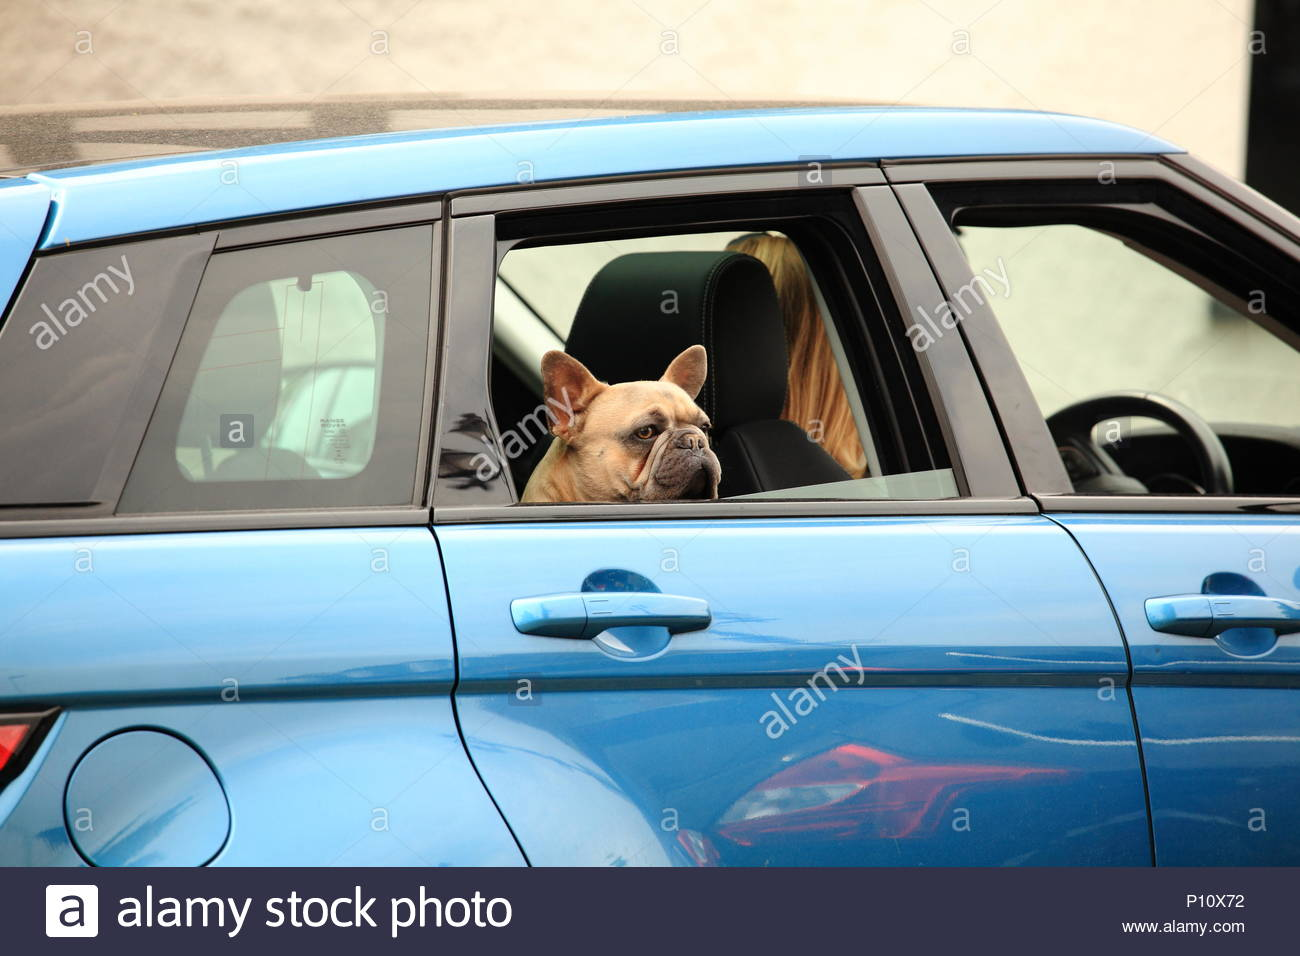 A Dog Riding On The Back Seat Of A Range Rover Car With Its Head Out Of The Window Knutsford Cheshire England Summer June 2018 - Stock Image